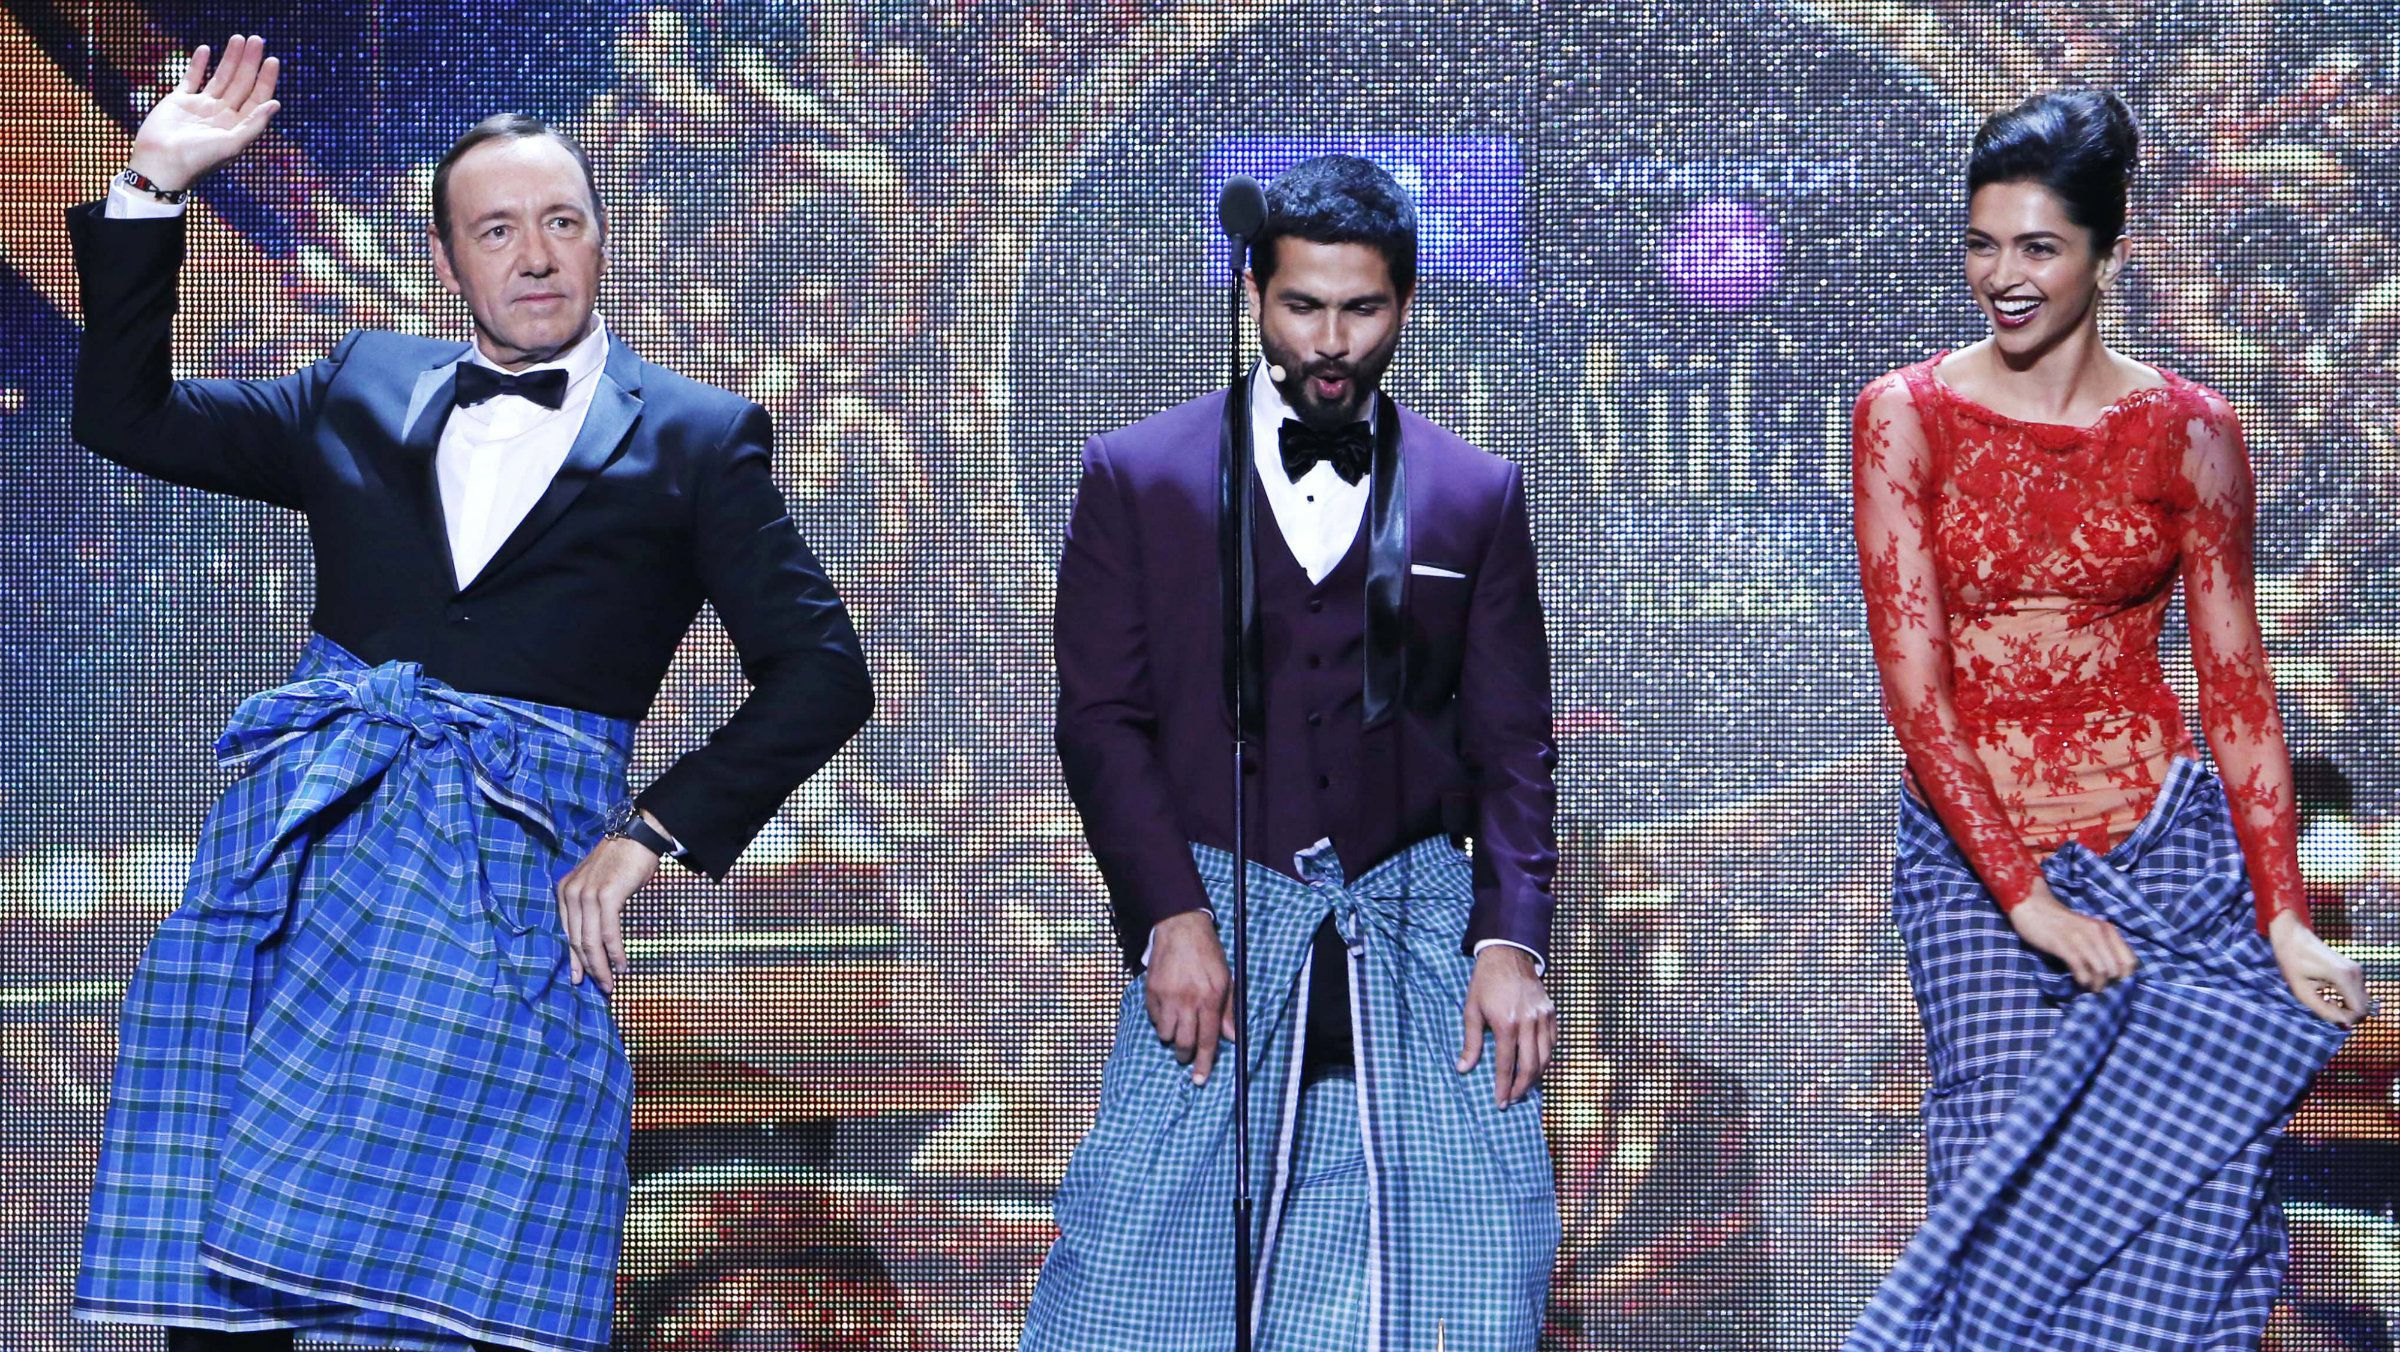 Hollywood actor Kevin Spacey dances the Lungi dance from the film Chennai Express with the film's actress Deepika Padukone and Bollywood actor Shahid Kapoor during the 15th International Indian Film Academy Awards in Tampa, Florida, April 26, 2014.